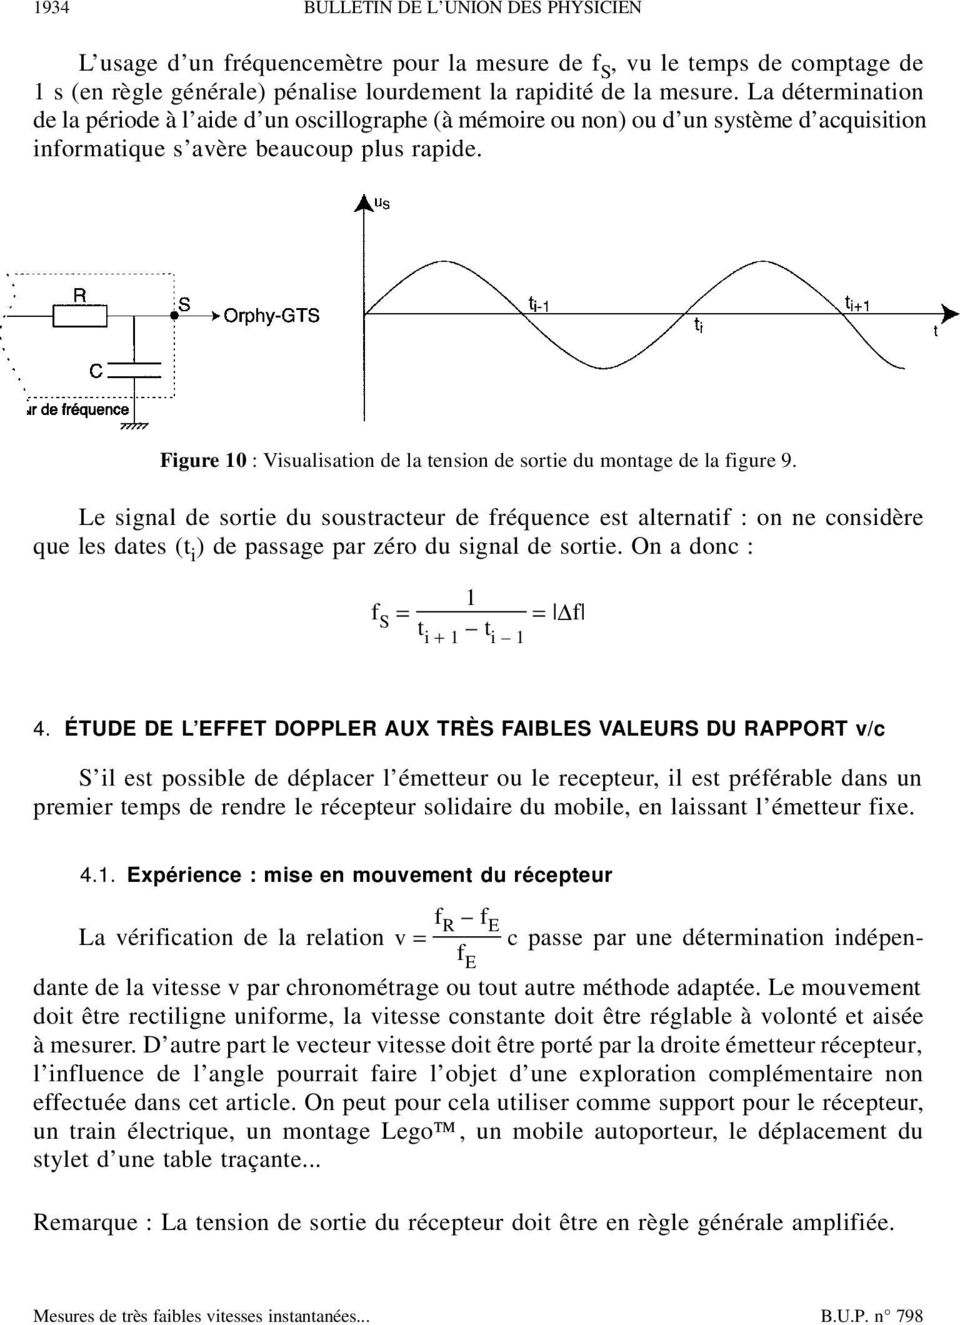 Figure 10 : Visualisation de la tension de sortie du montage de la figure 9.